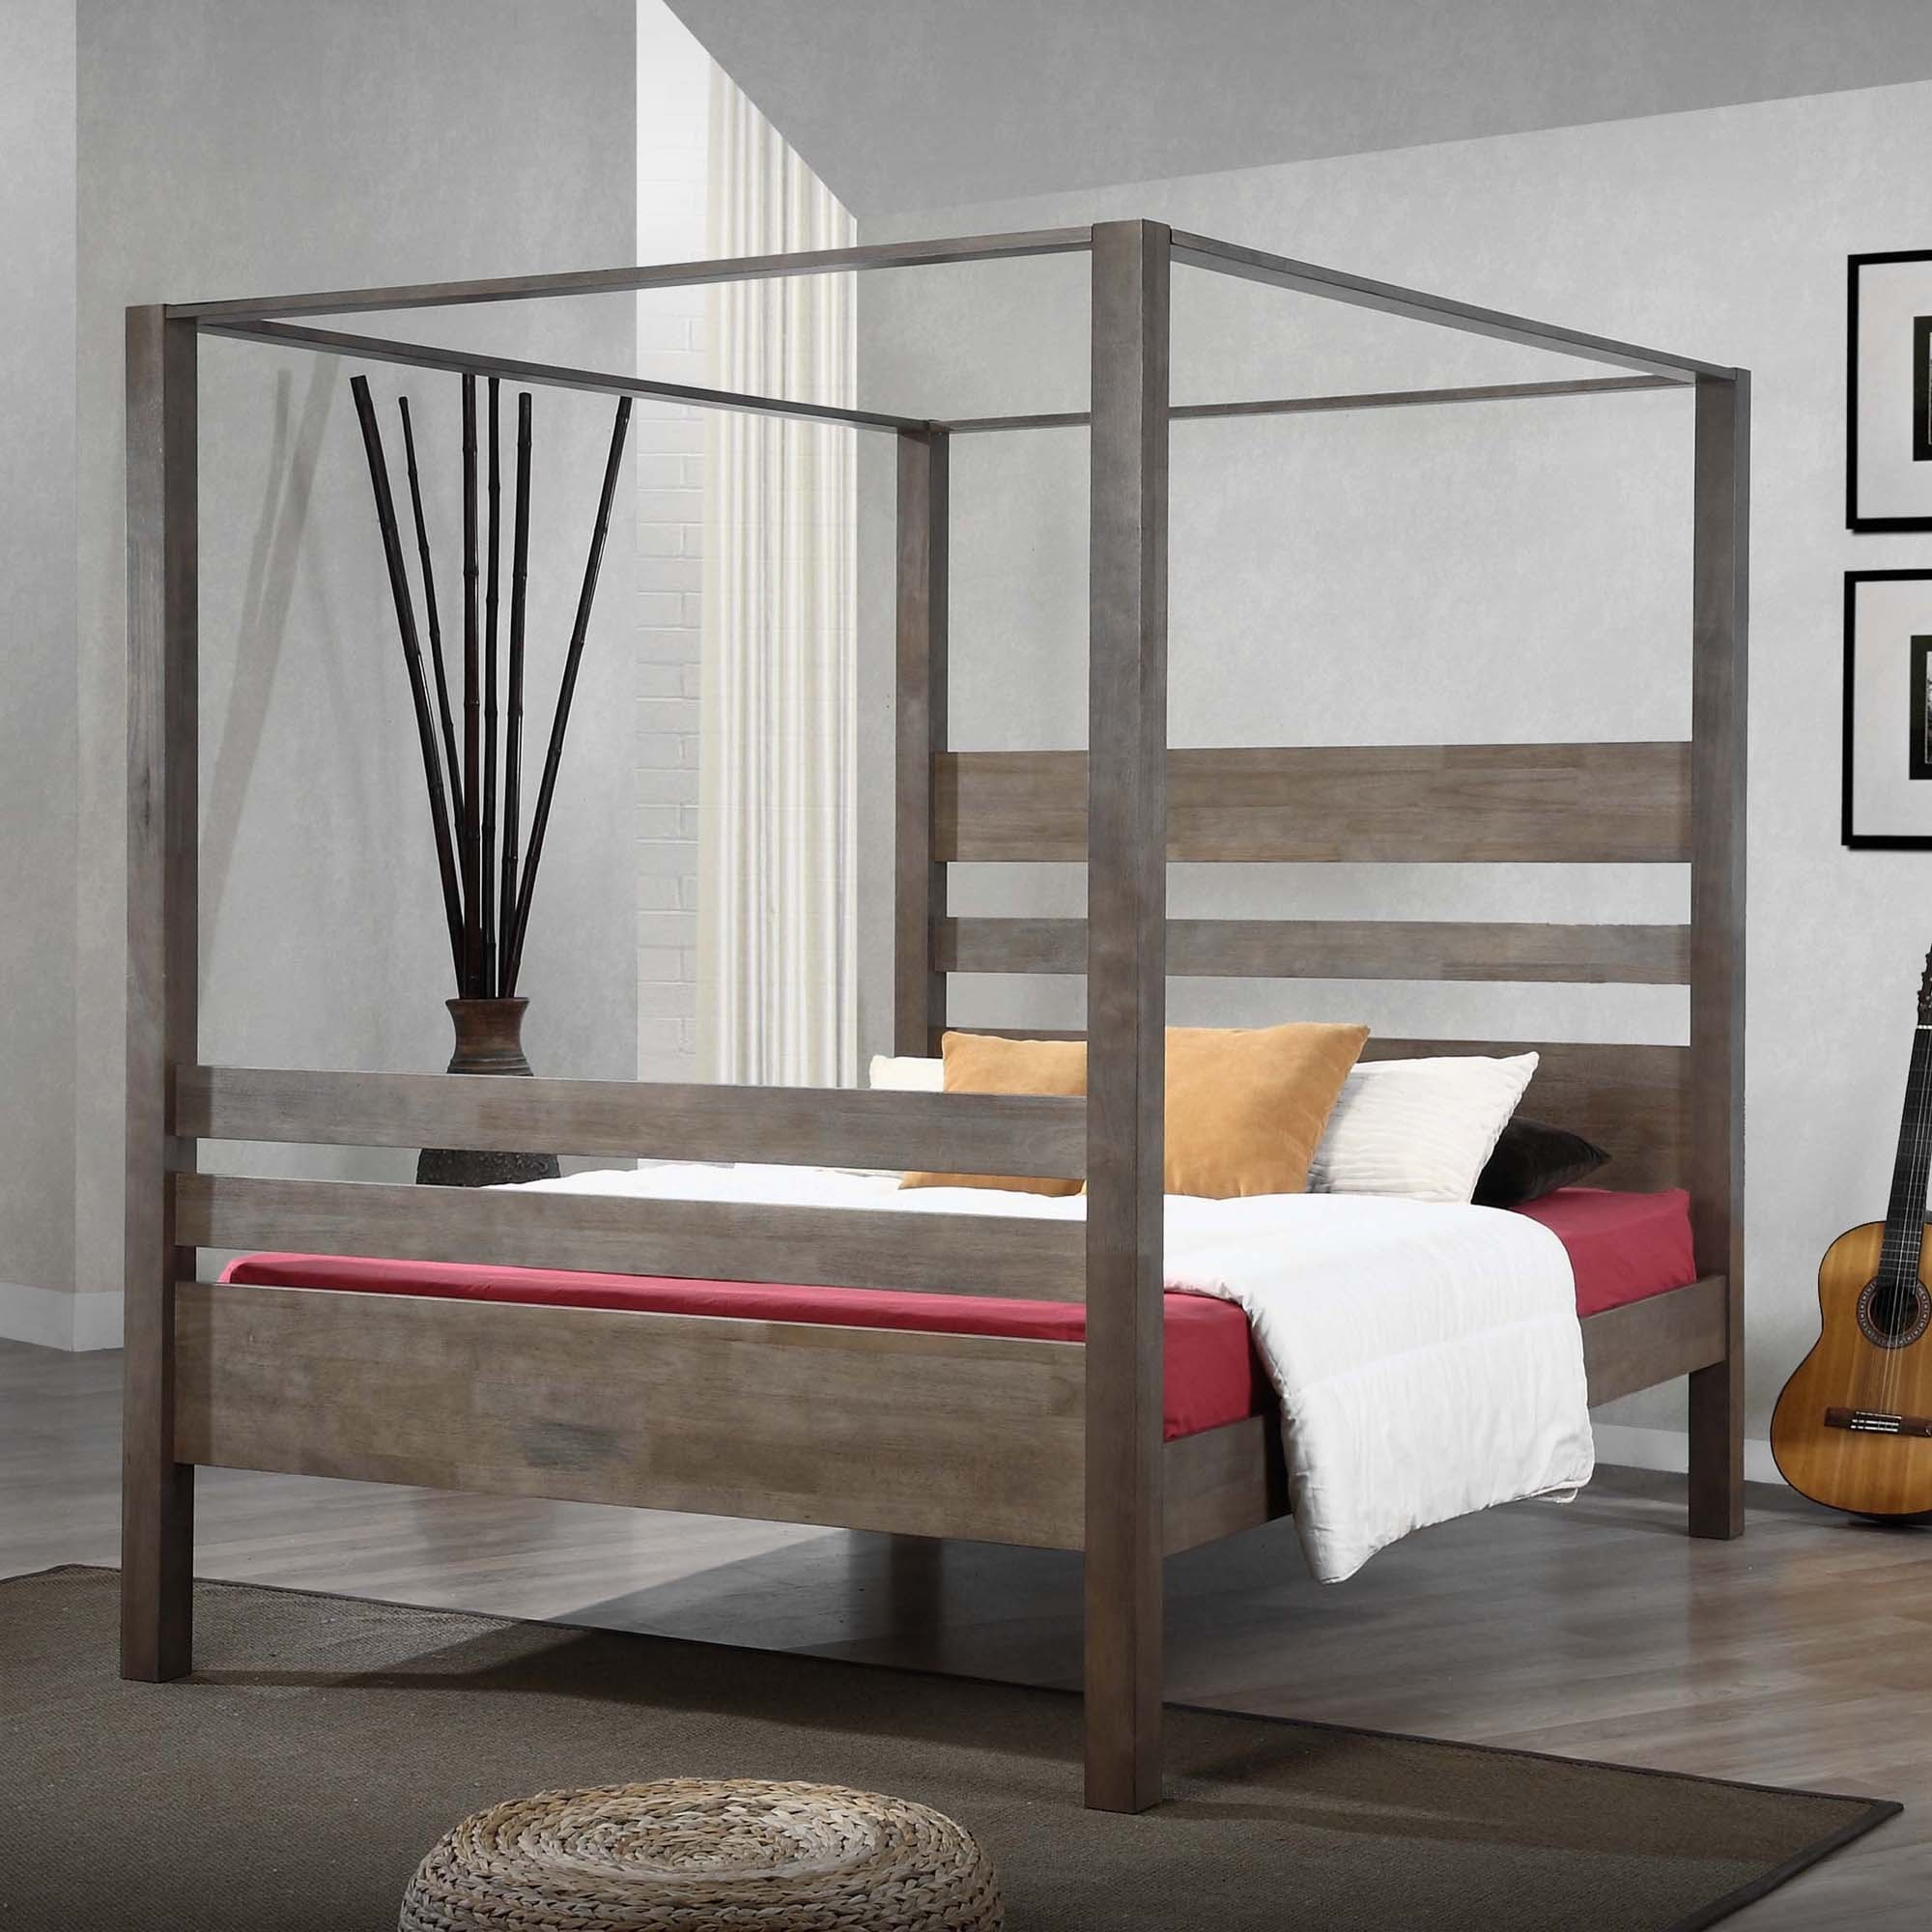 I Love Living Marion Charcoal Grey Queen Canopy Bed : canopy for bed walmart - memphite.com